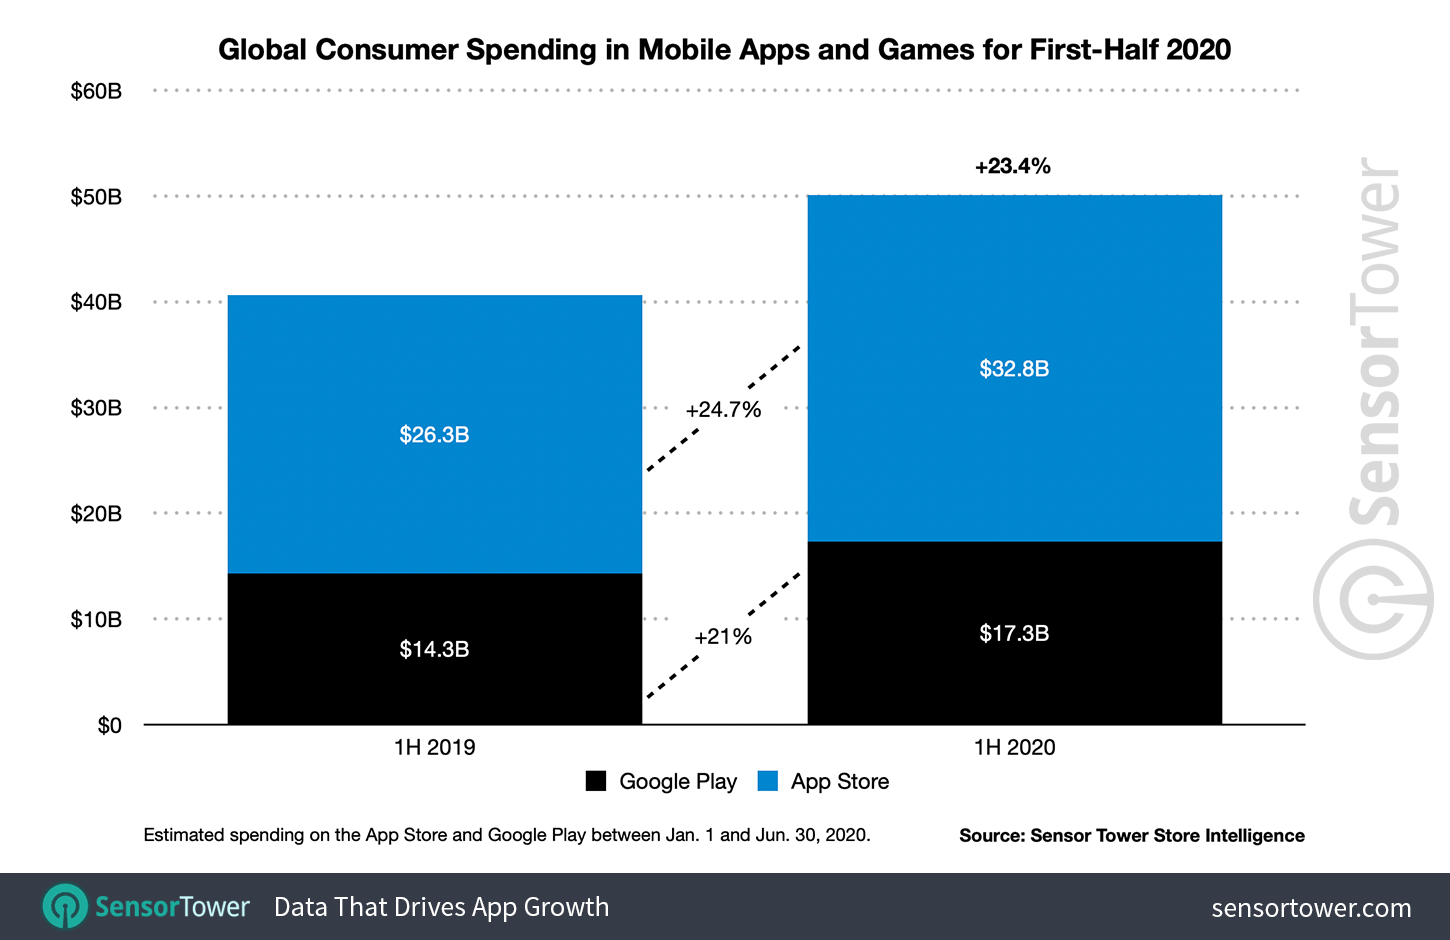 android-vs-ios-game-development-which-platform-runs-the-show-in-2021-2